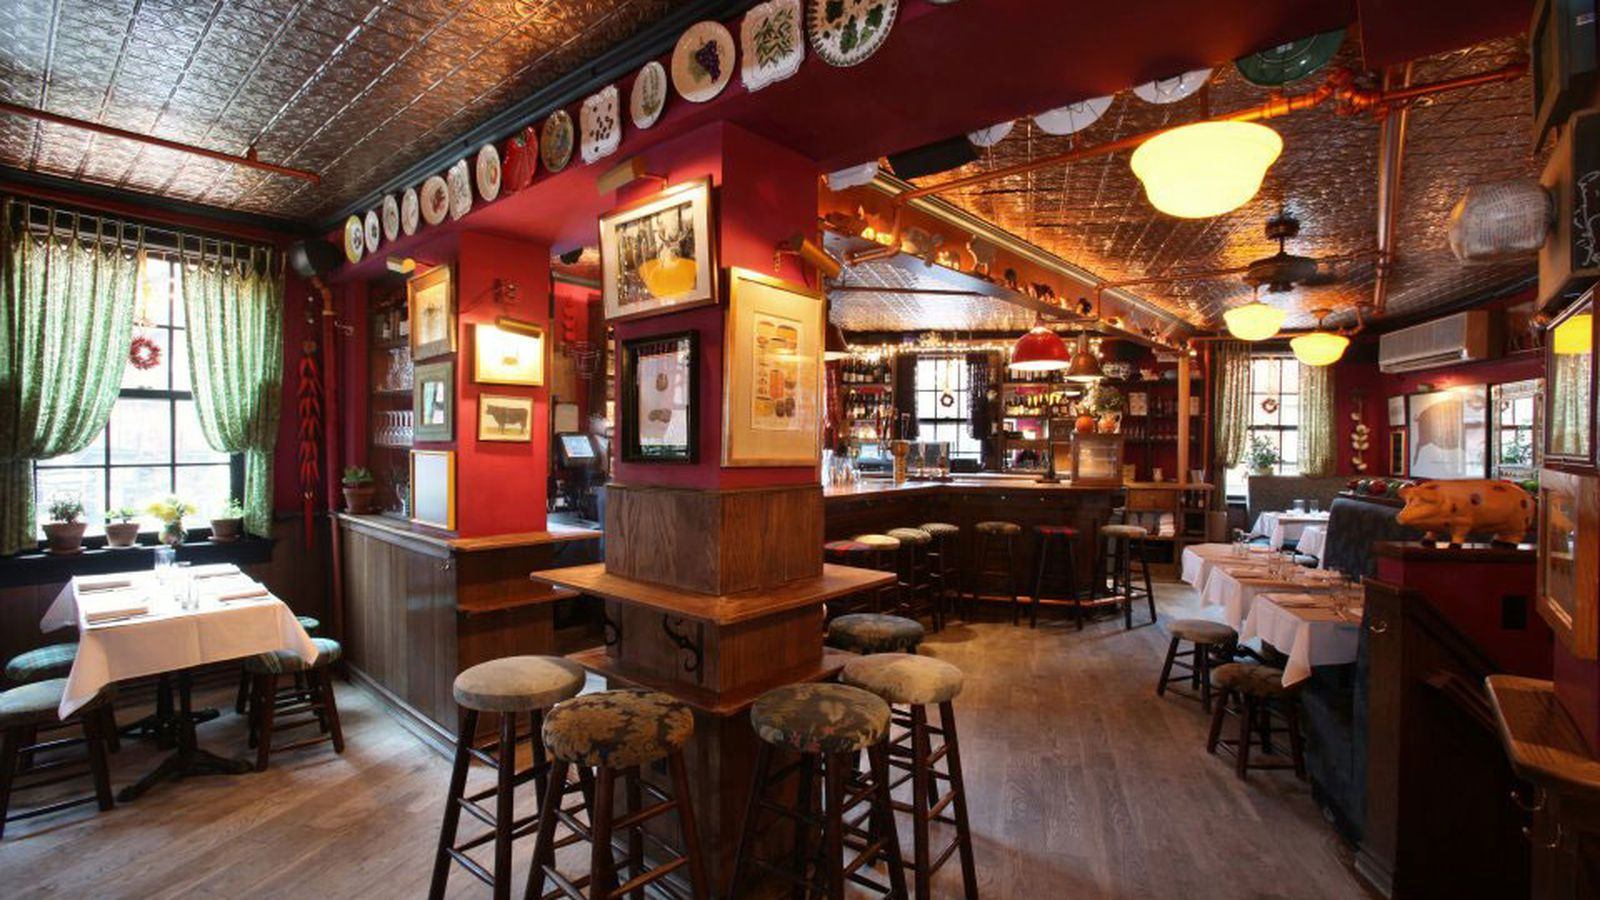 Gordon Ramsay Has Officially Turned Over the Spotted Pig